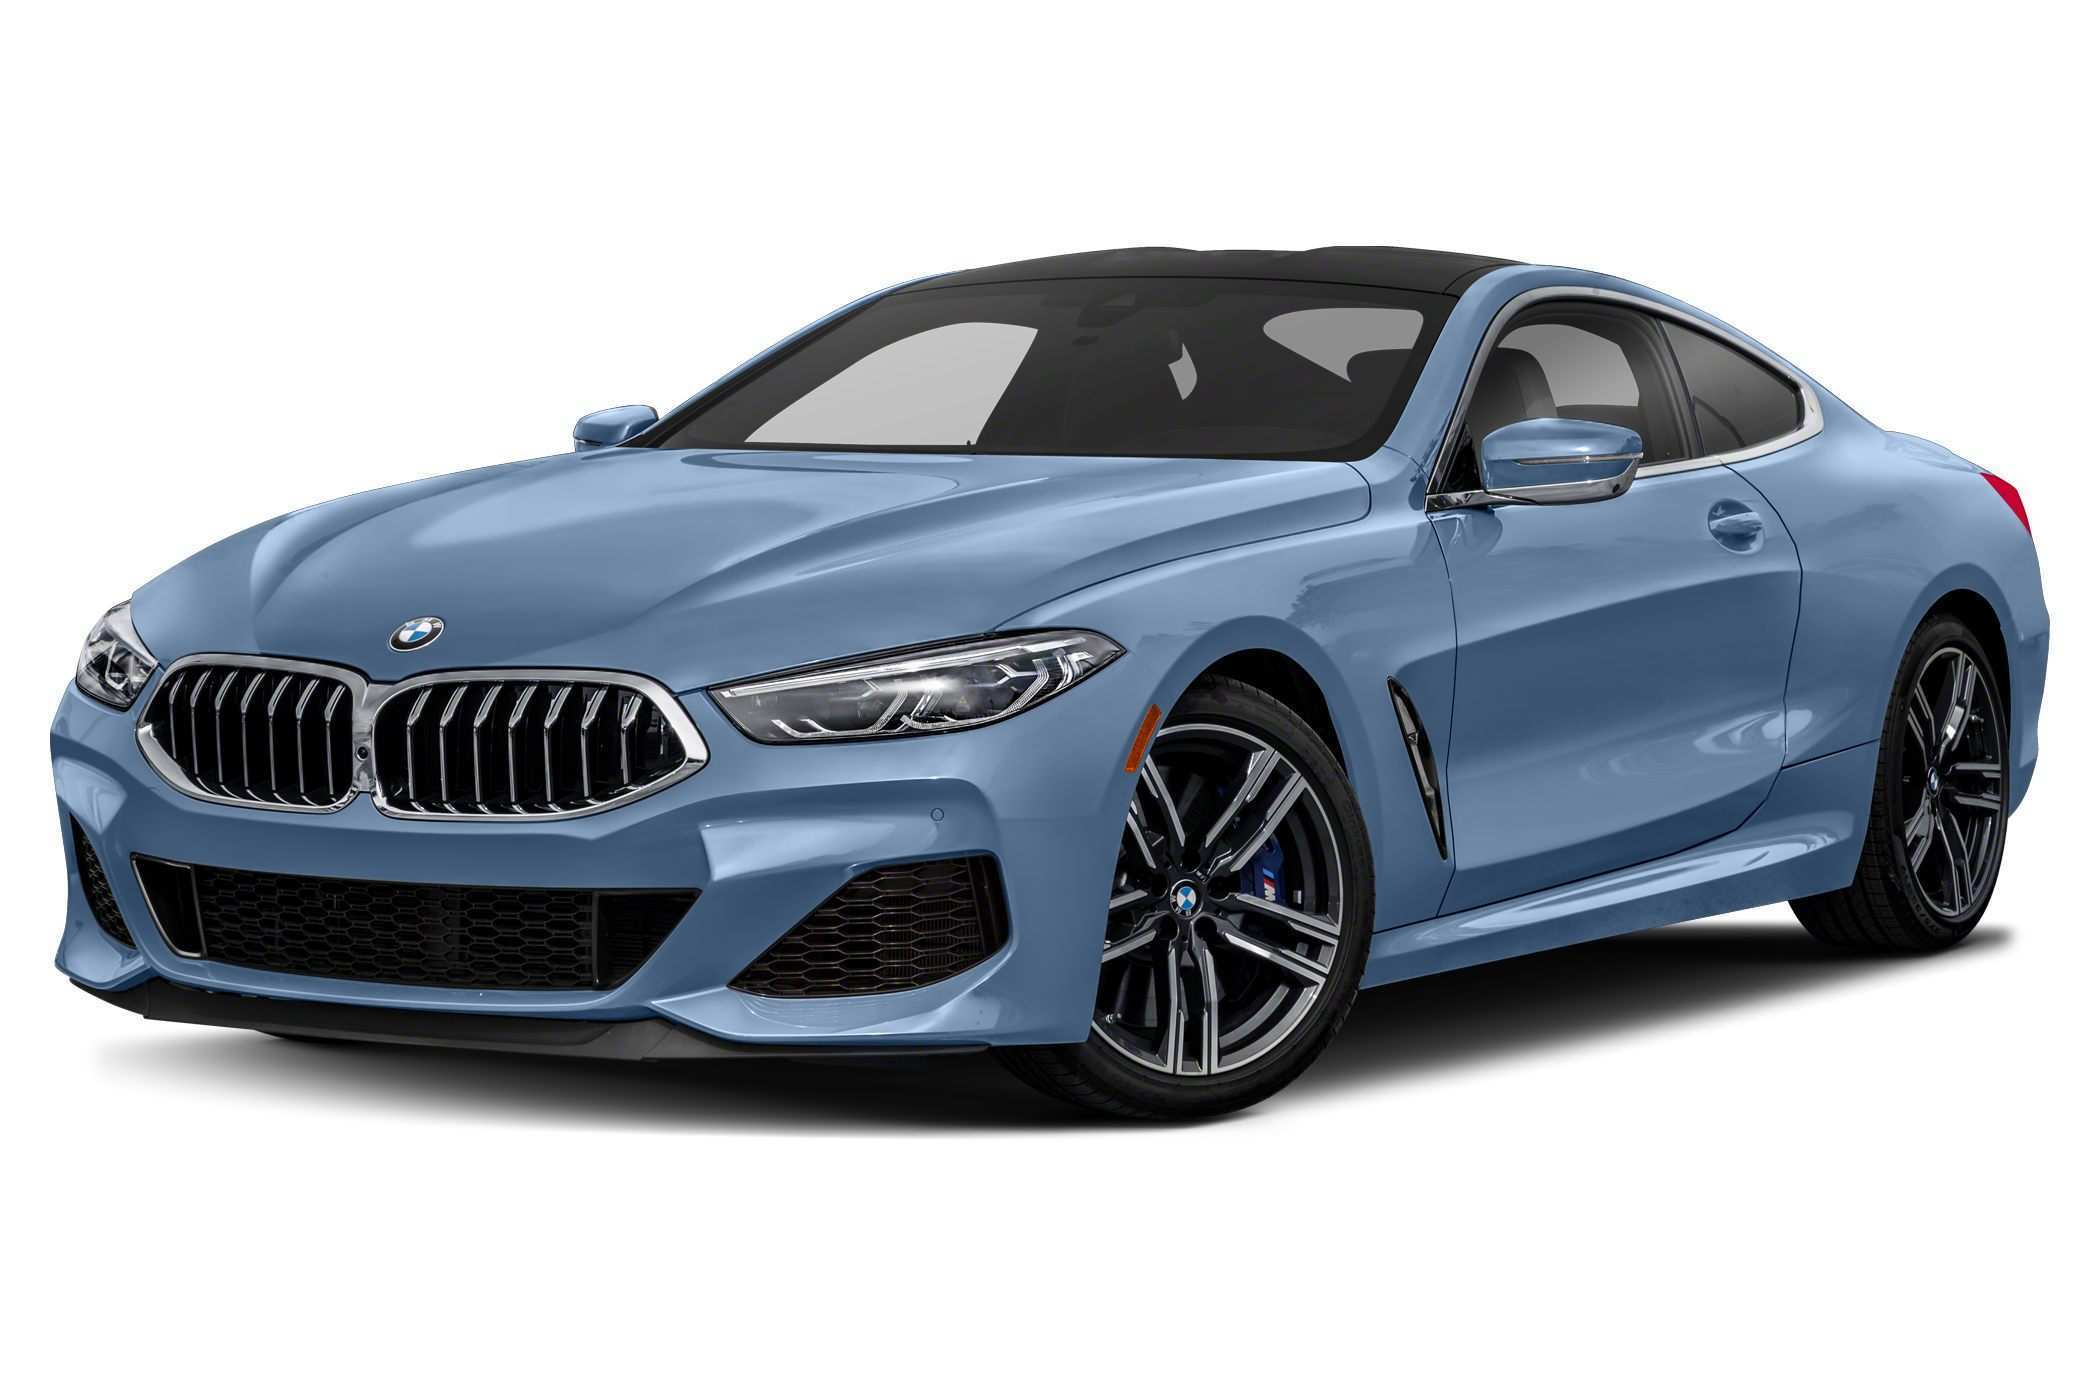 94 The M850 Bmw 2019 Interior Exterior And Review Photos by M850 Bmw 2019 Interior Exterior And Review